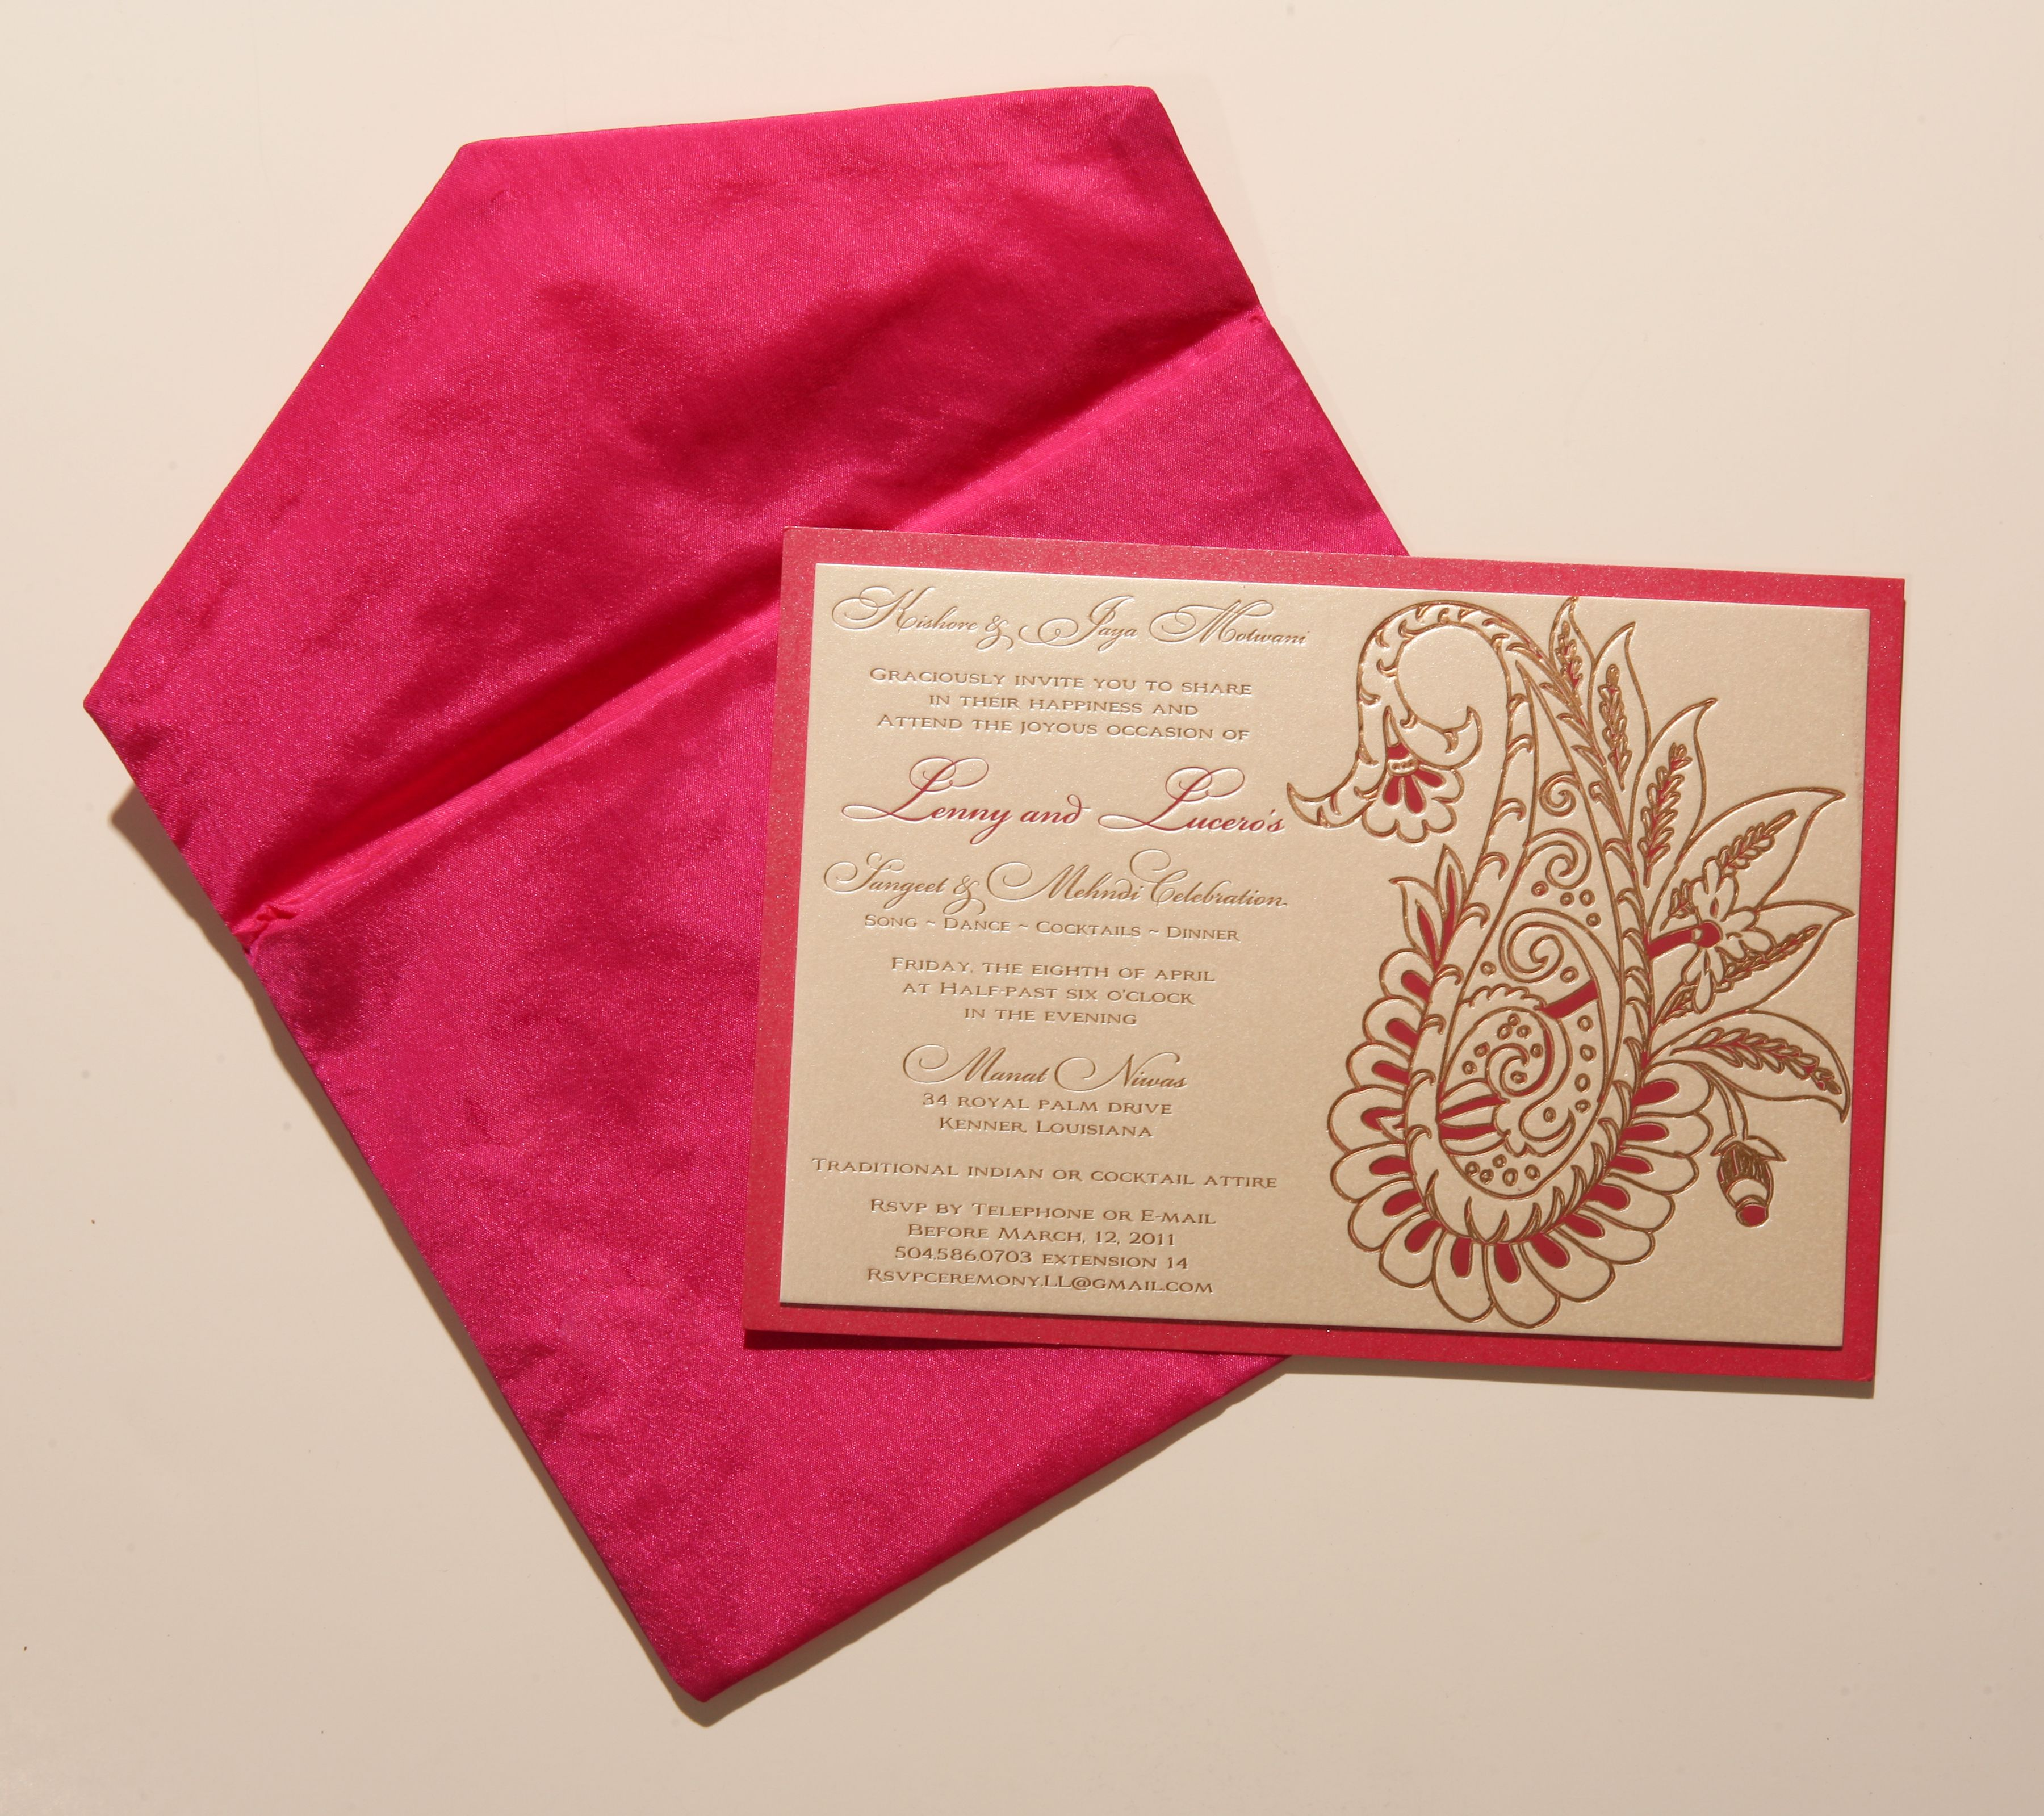 Letterpress party invitation with fabric pocket | Our Invitations ...